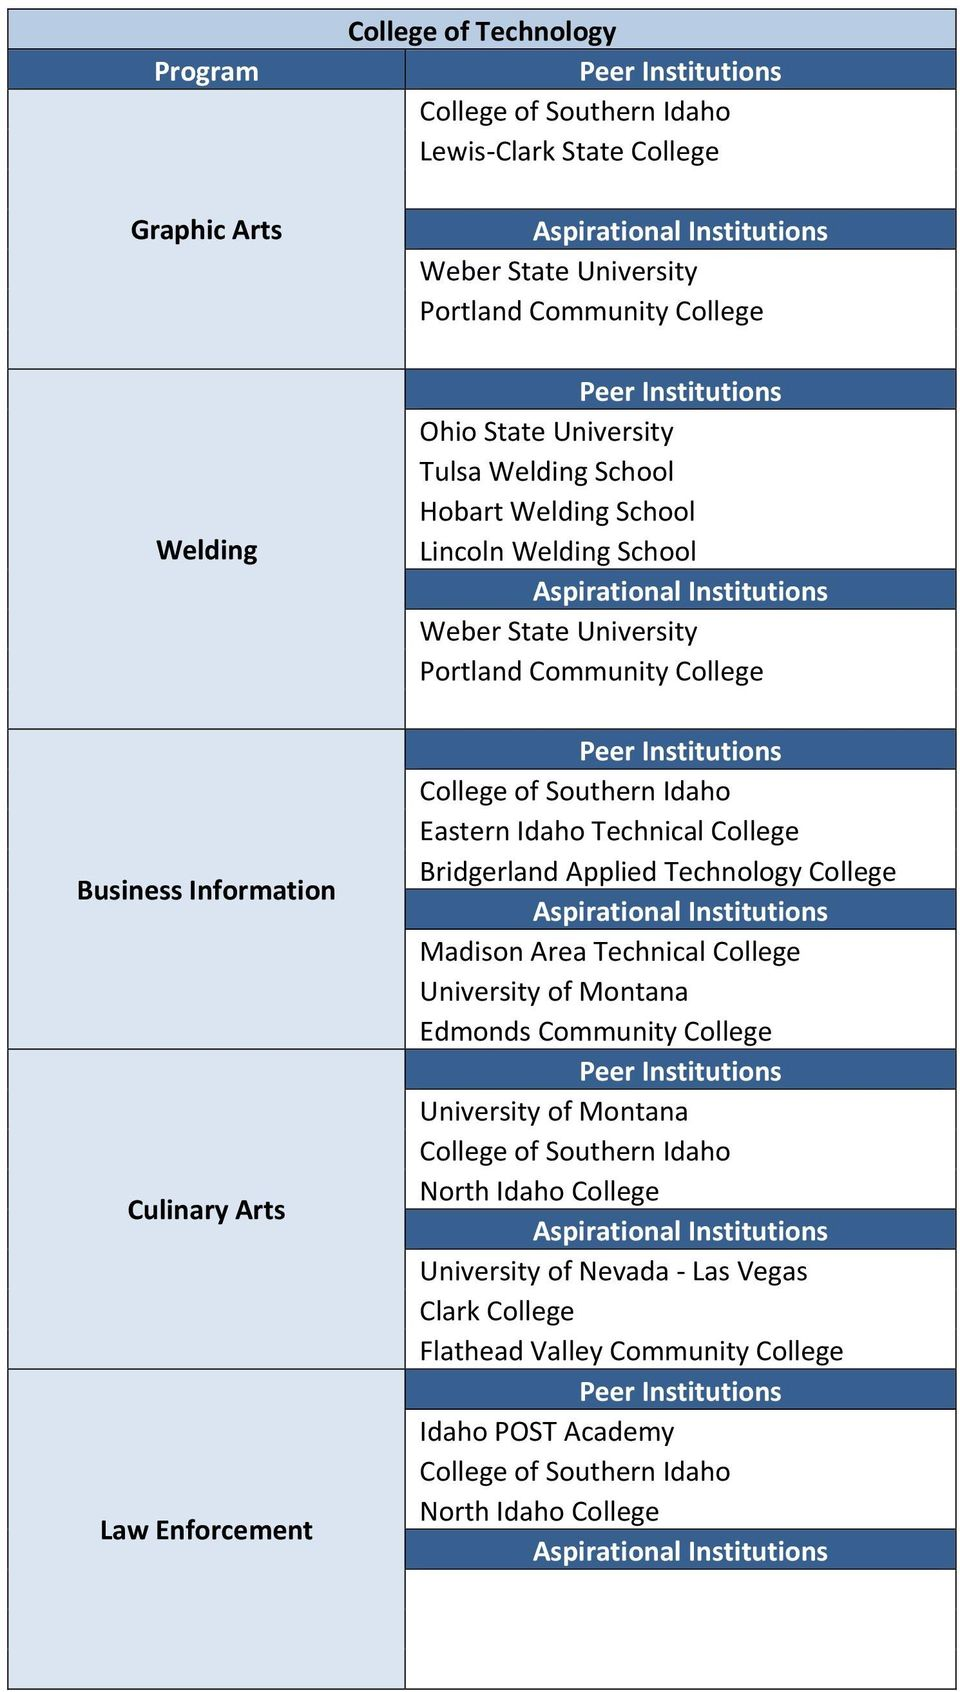 College Eastern Idaho Technical College Bridgerland Applied Technology College Madison Area Technical College Edmonds Community